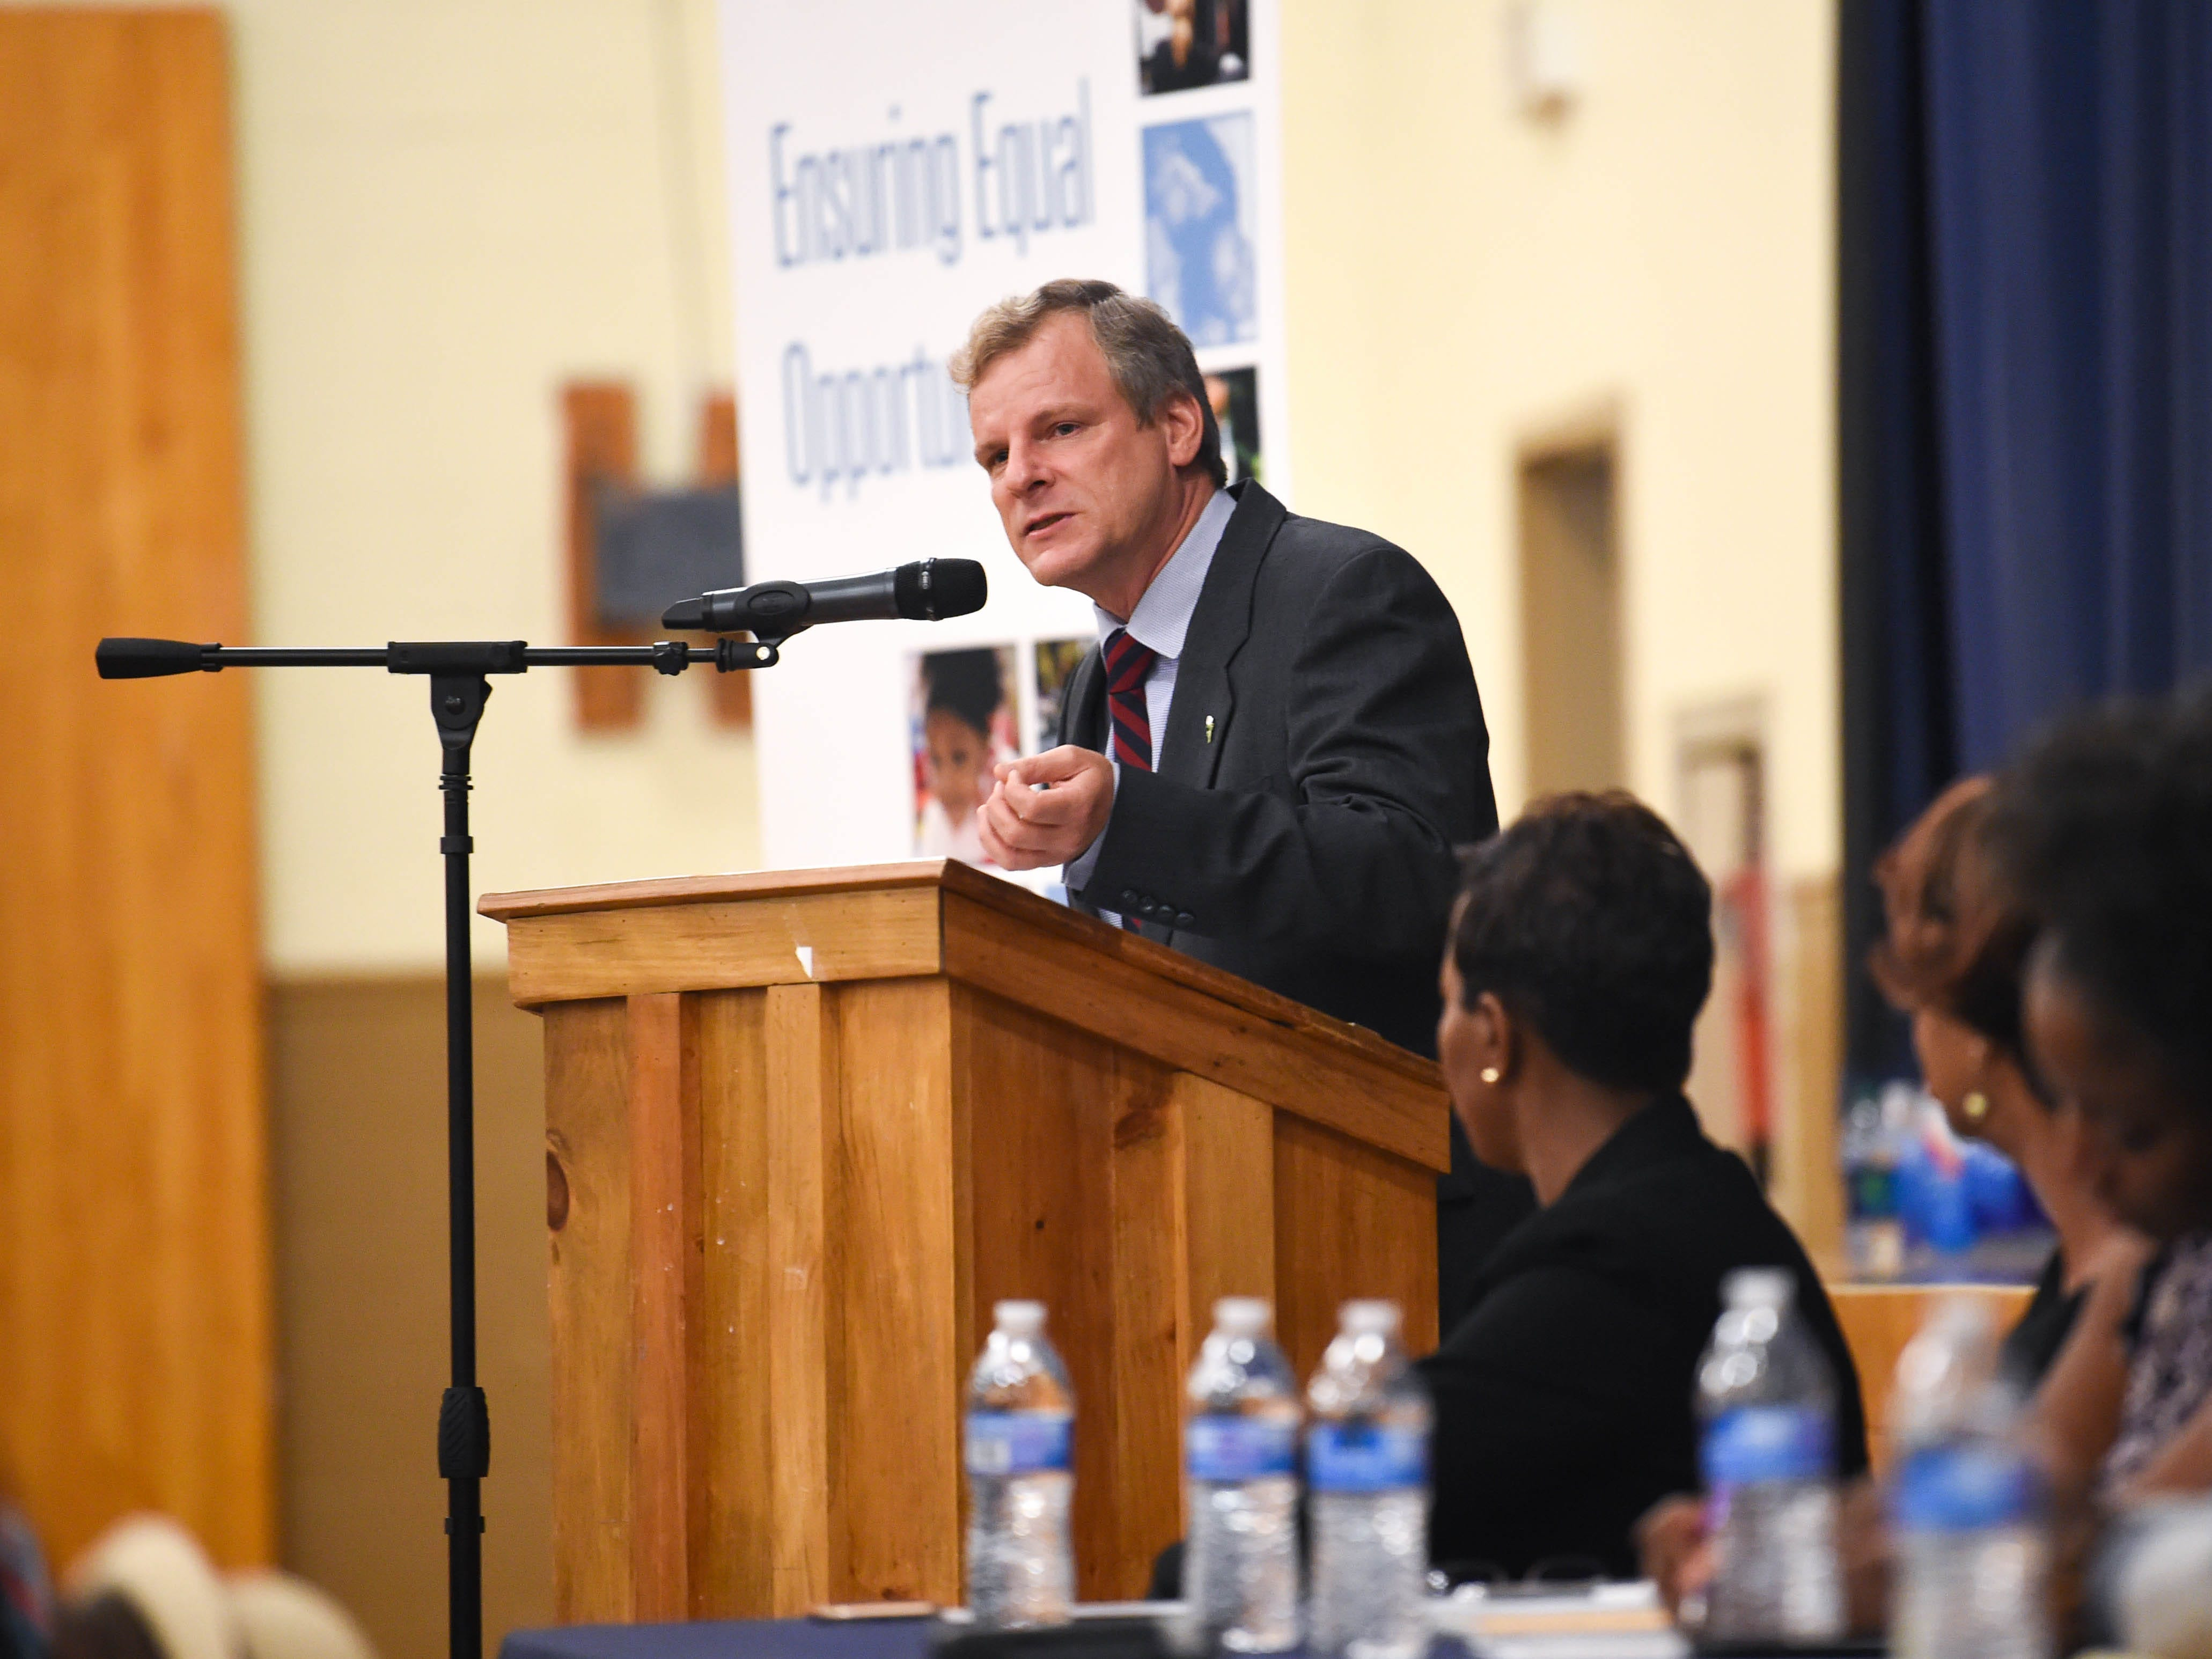 """Mayor Michael Helfrich greets the crowd during the """"No Hate in Our State"""" Social Justice Town Hall meeting at the Crispus Attucks Community Center, Wednesday, September 26, 2018."""